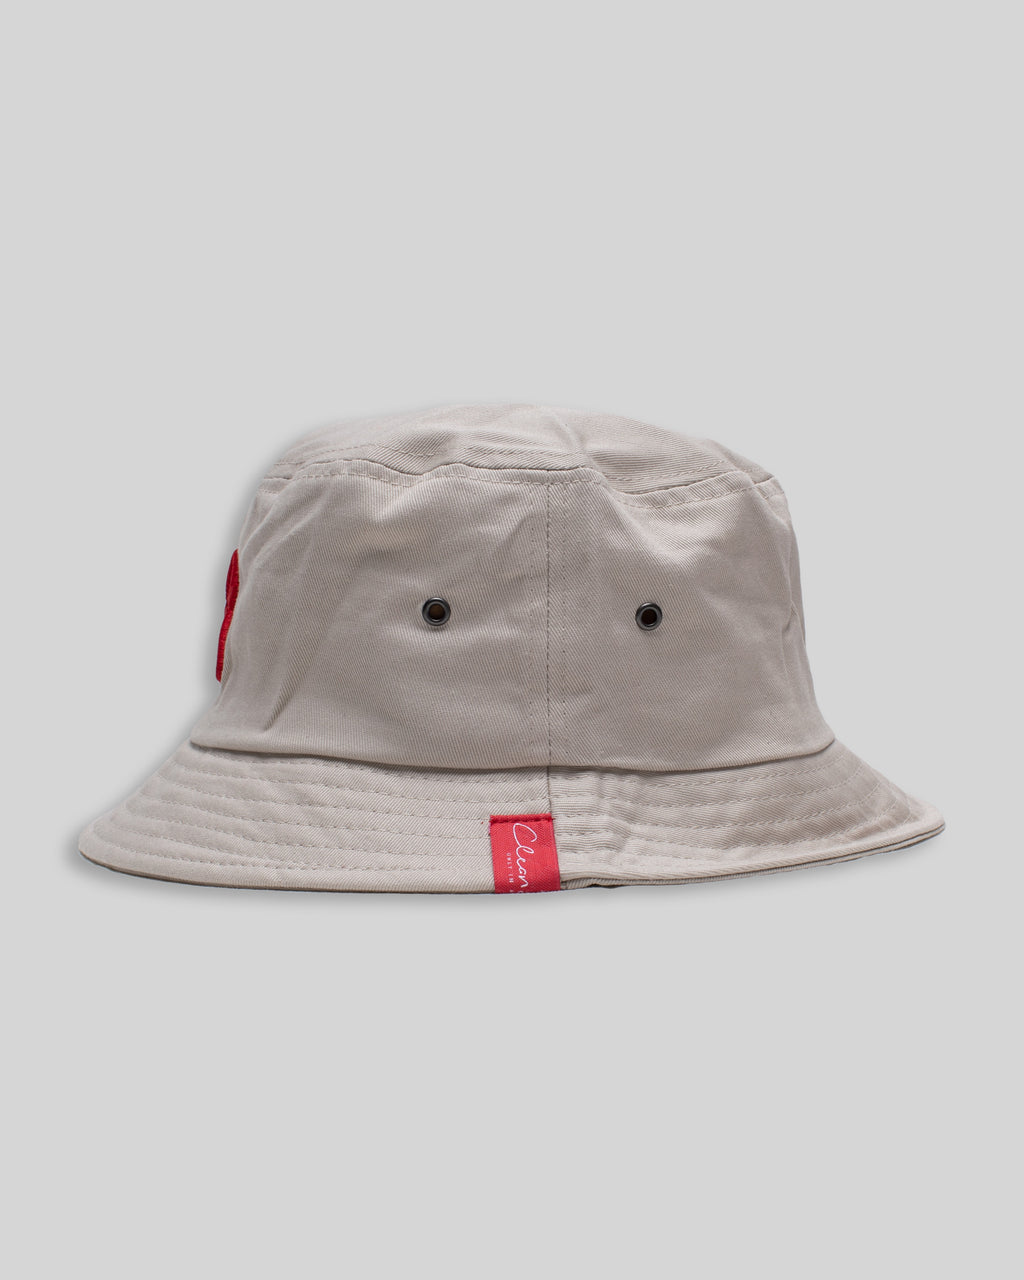 3.4 Metal Eyelet Bucket Hat 3